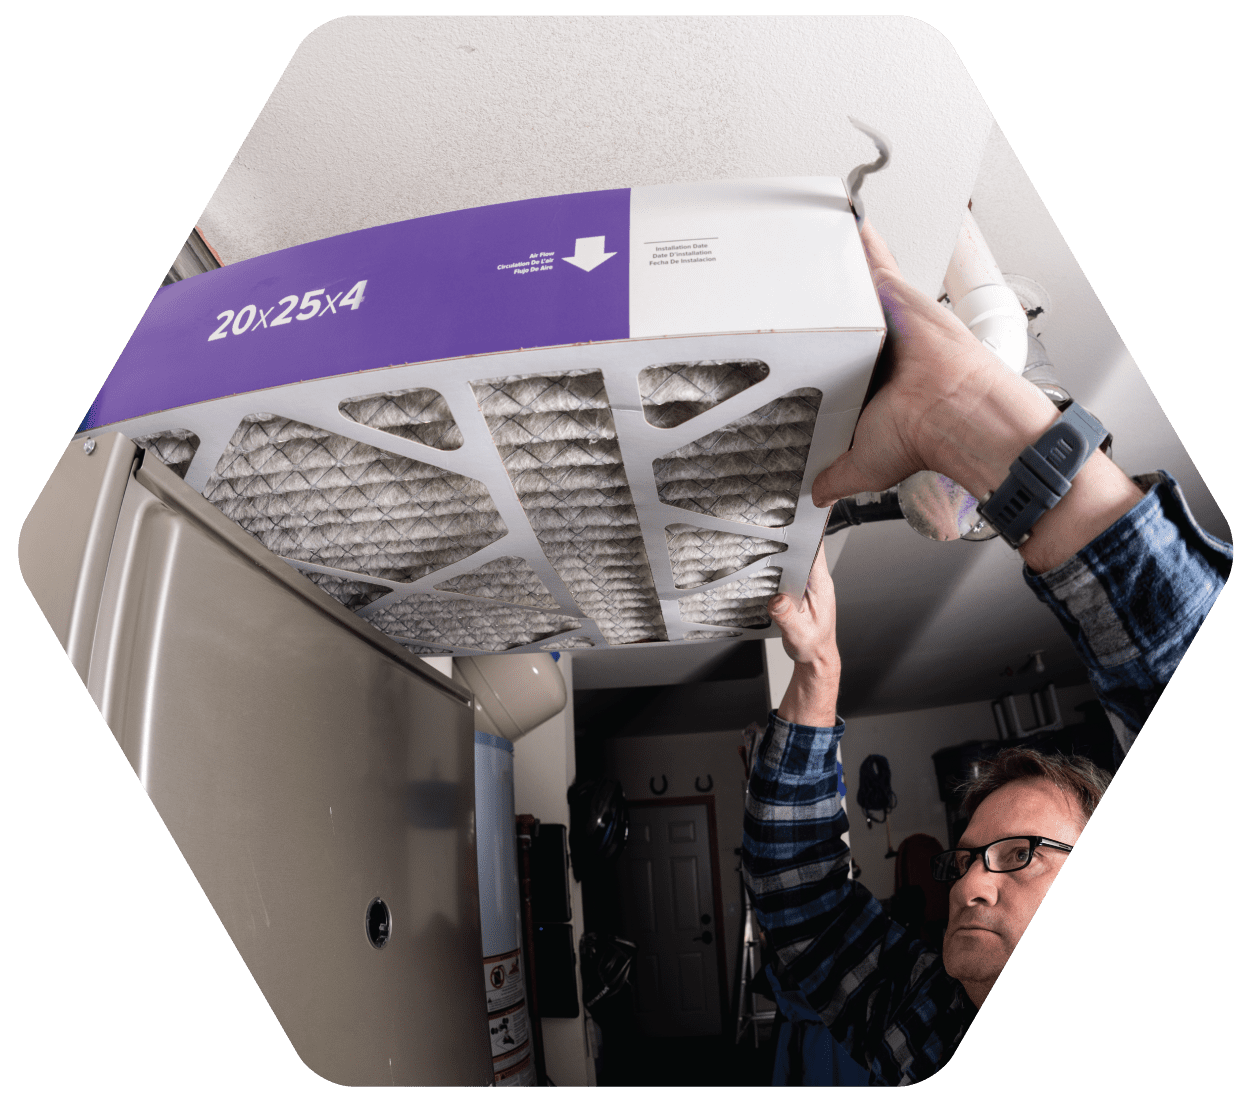 Replacing Furnace Filter, Prepared For Winter | Lee Mechanical